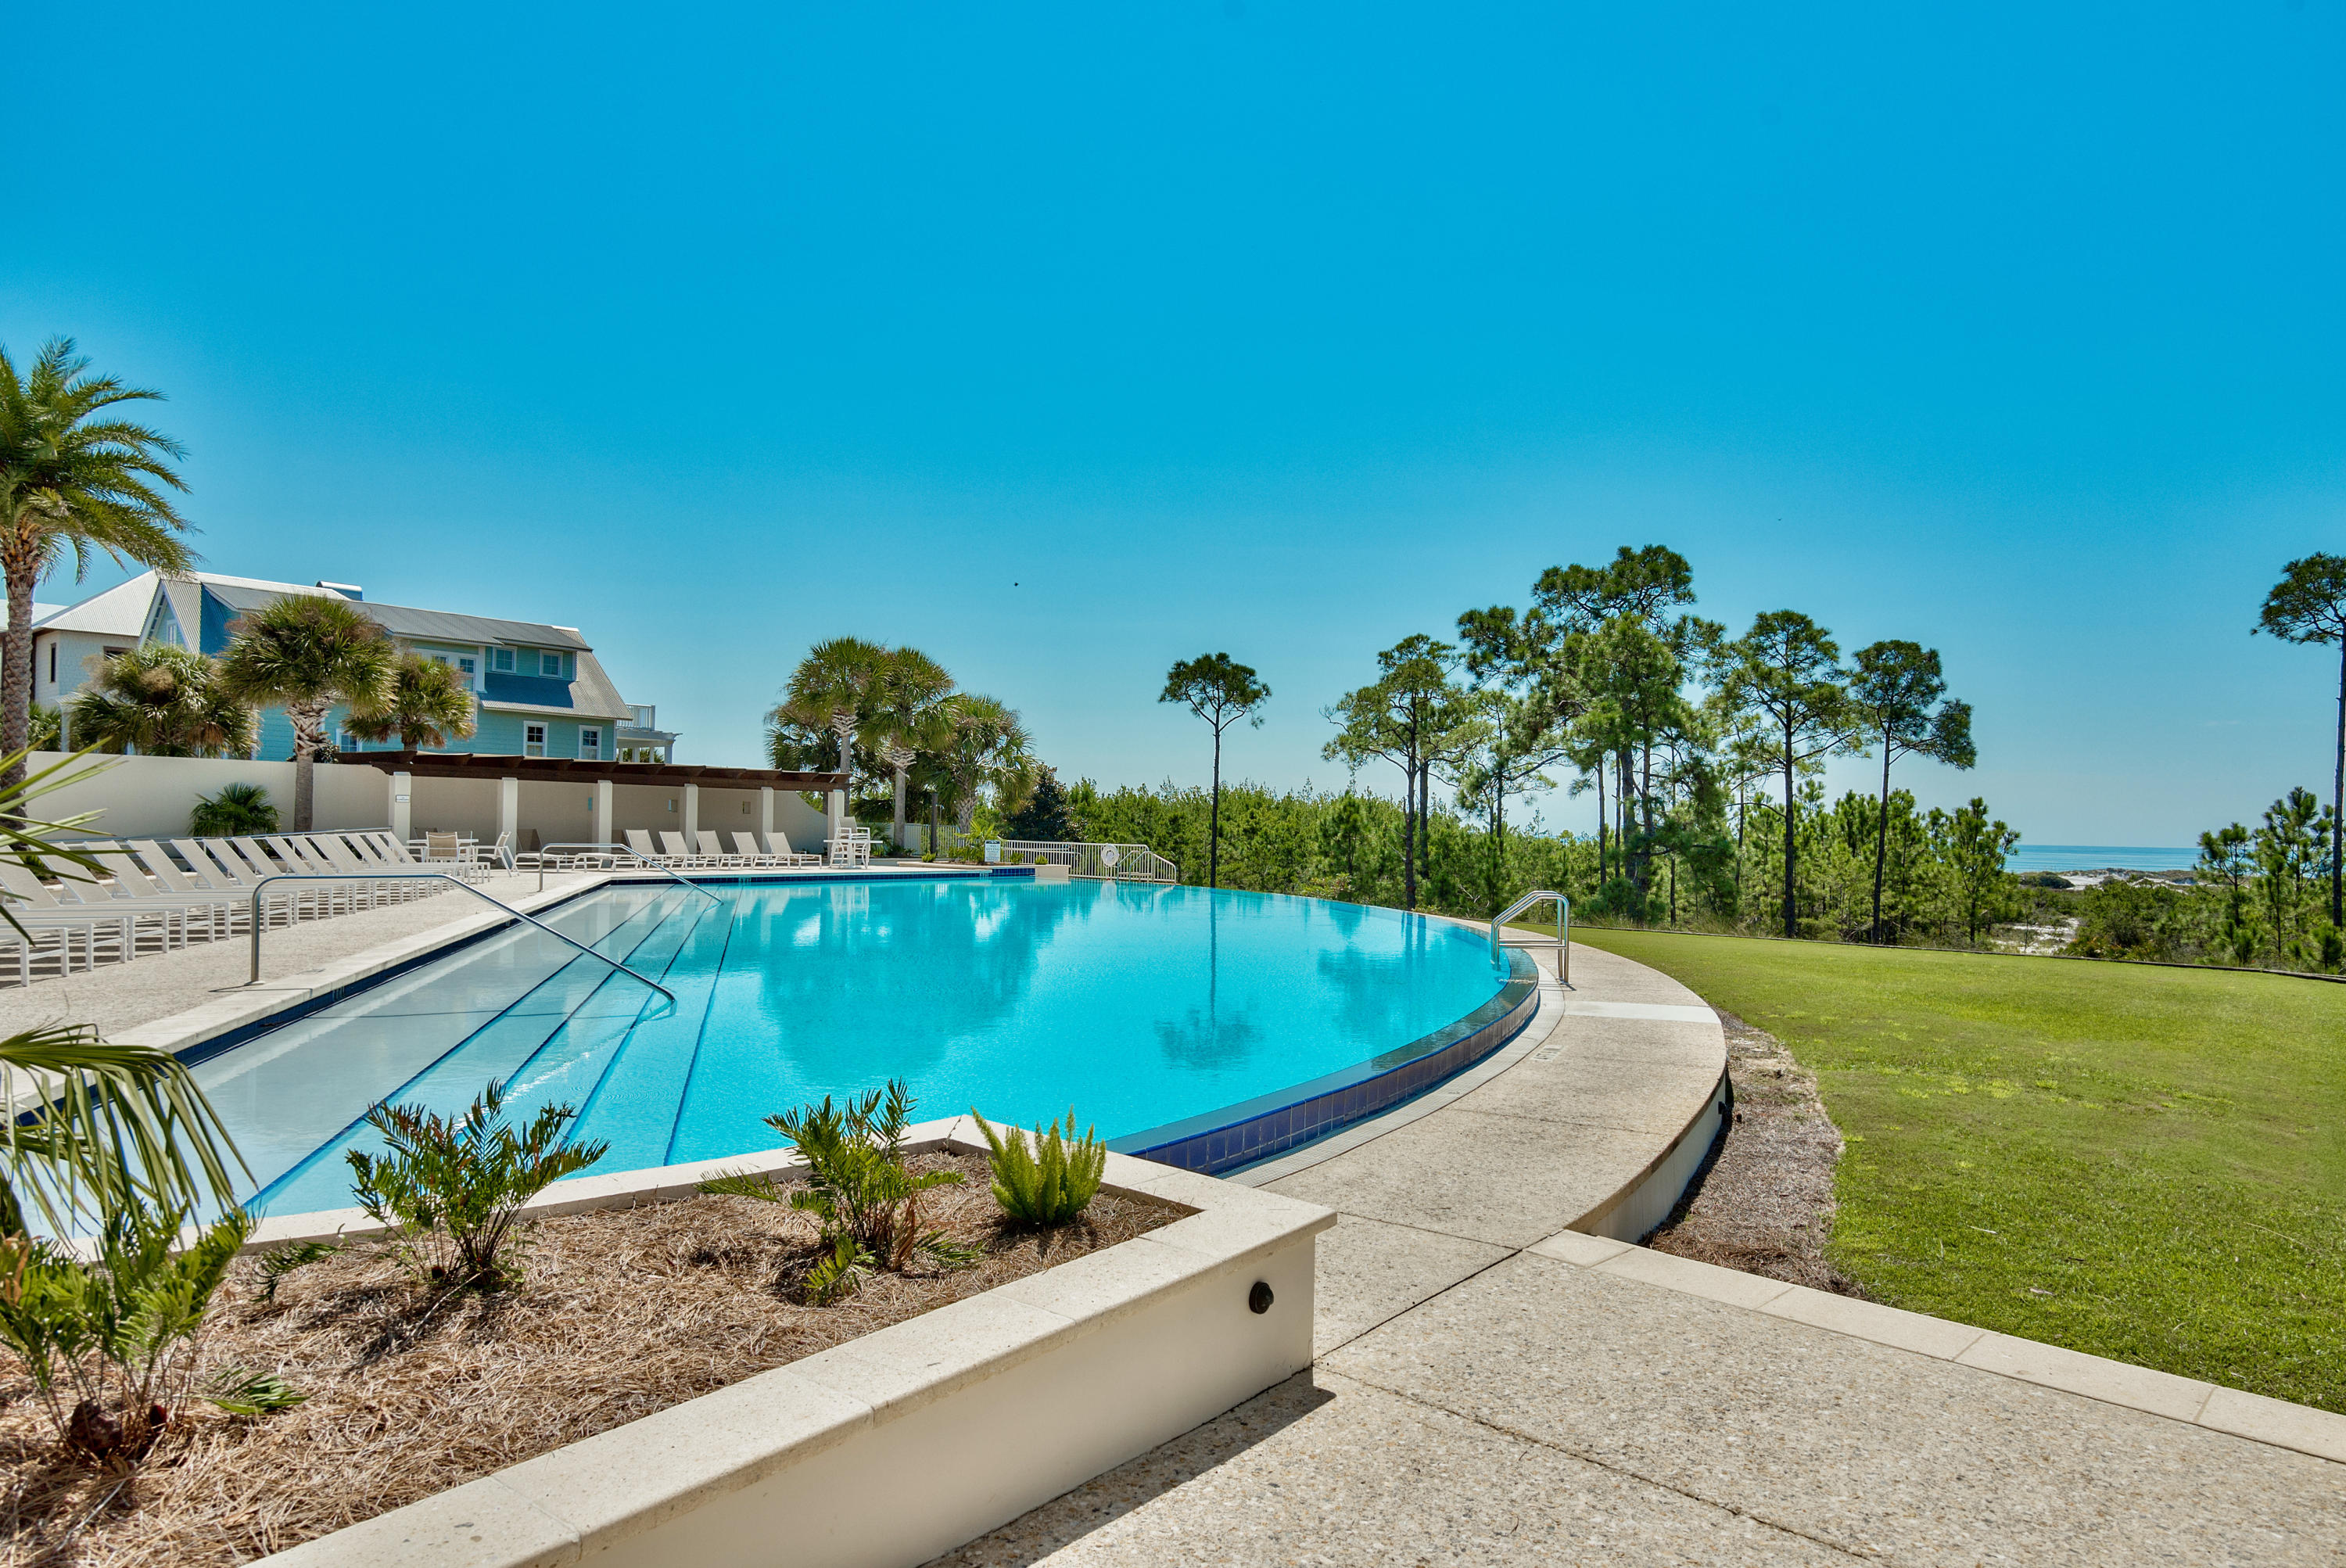 Lot 140 Gulf Walk  Photo 41